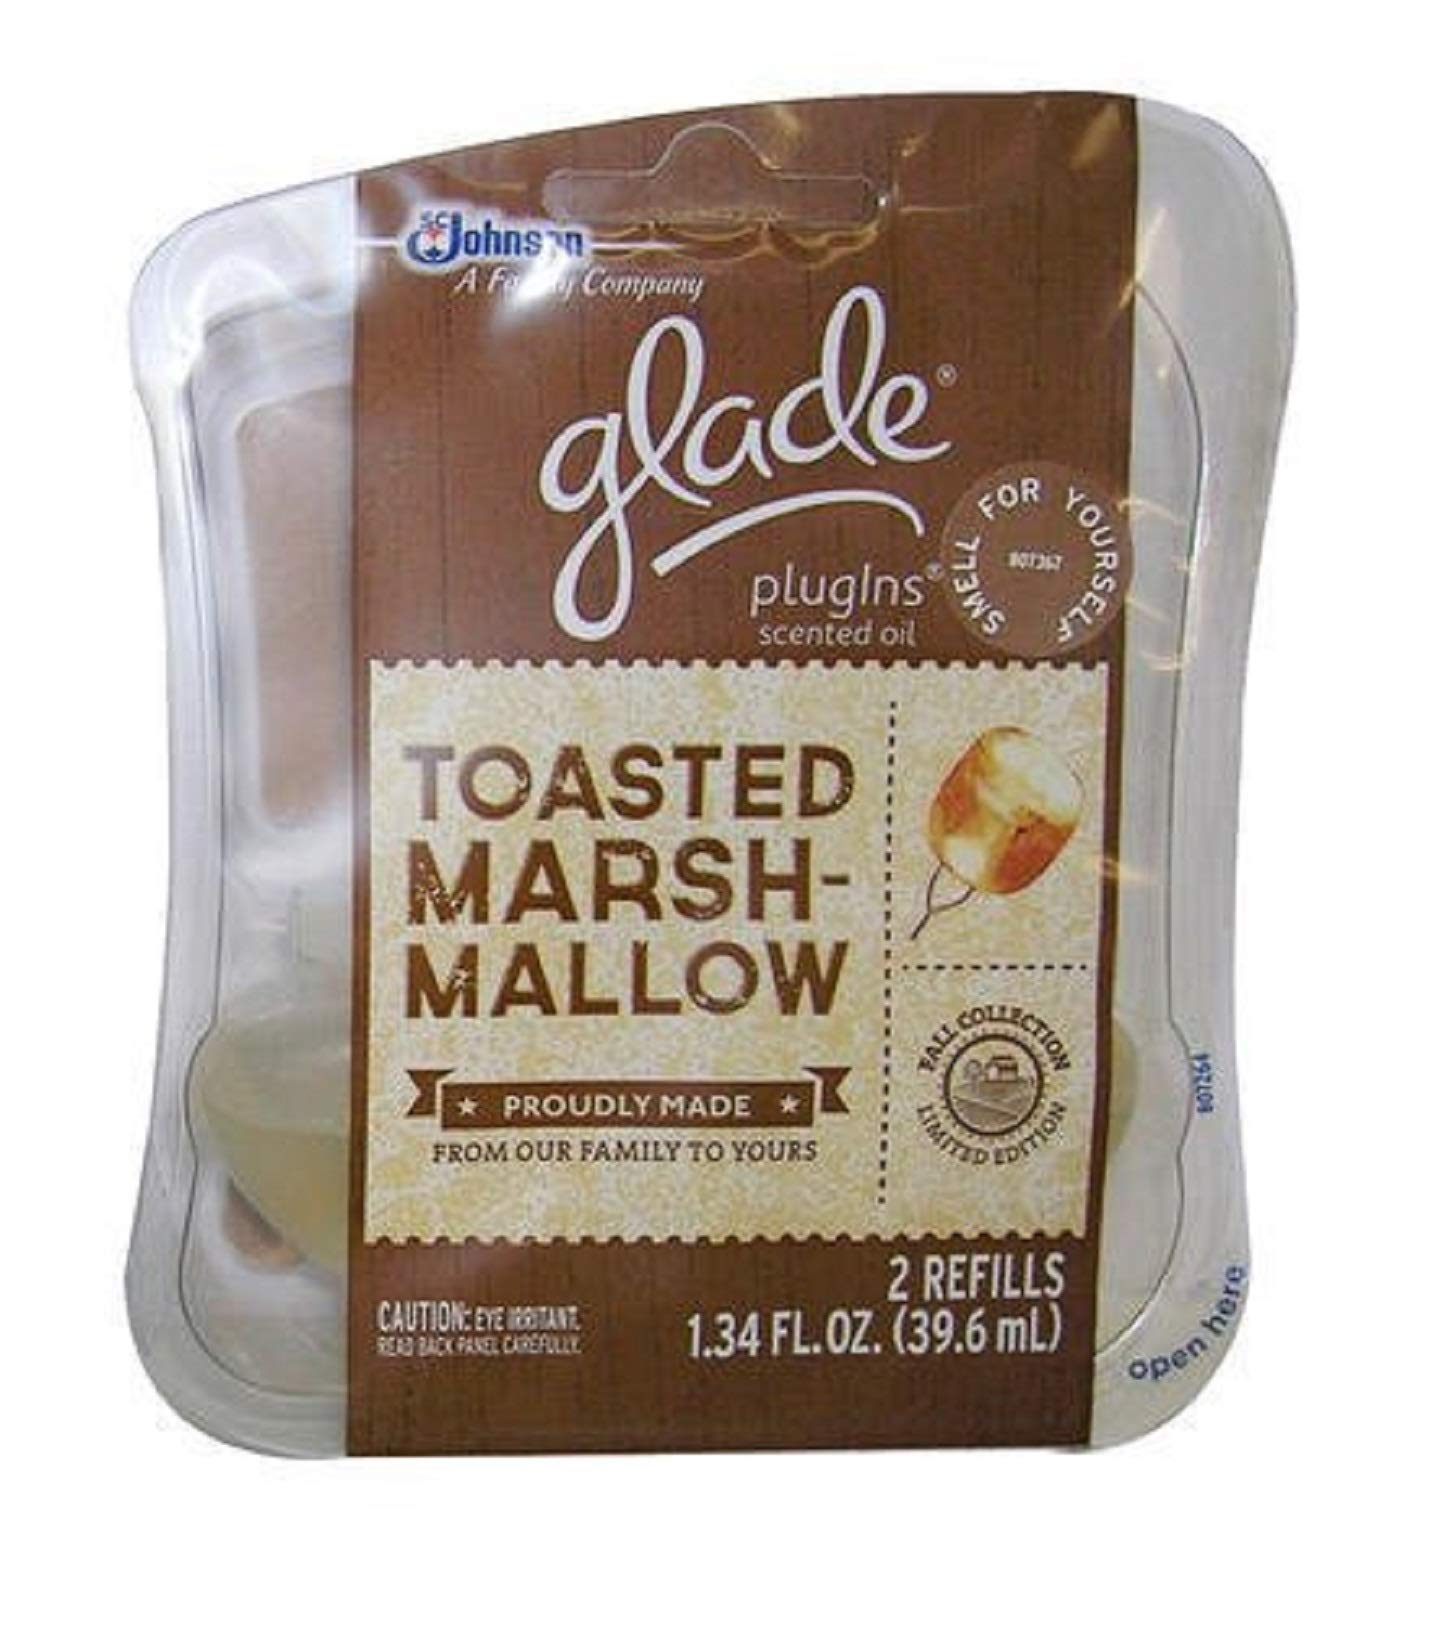 Glade Plug-in Scented Oil Refill 2 Ct Each - Toasted Marshmallow Holiday Edition (Pack of 10) by Glade (Image #1)